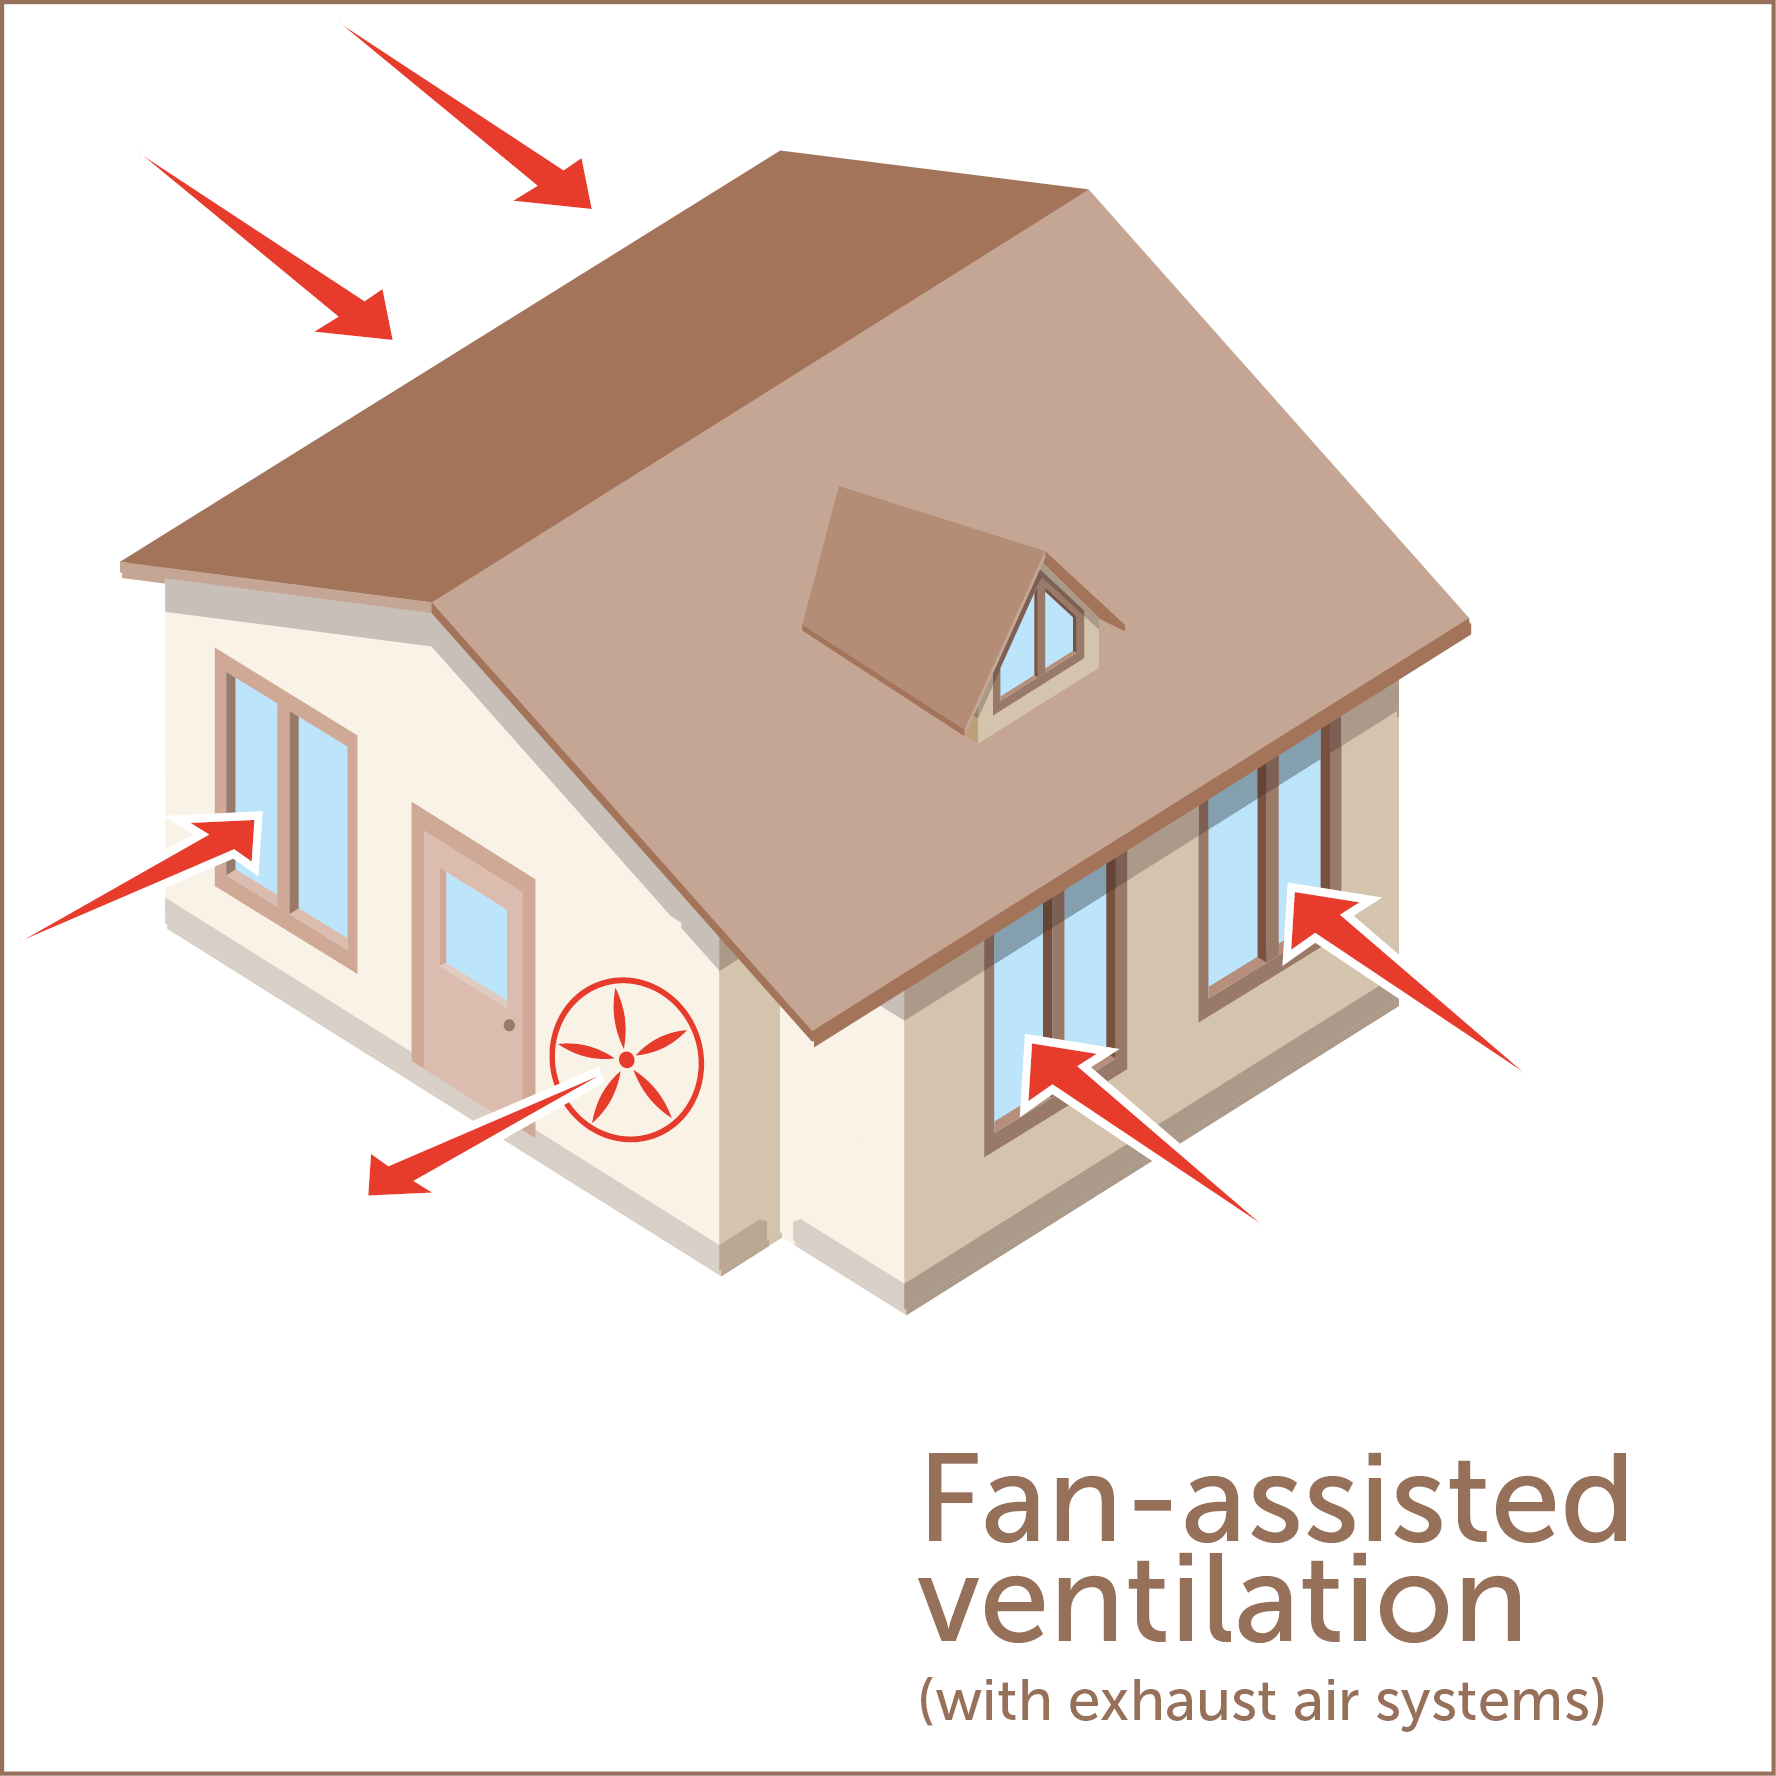 arimeo window rebate vents in fan-assisted ventilation